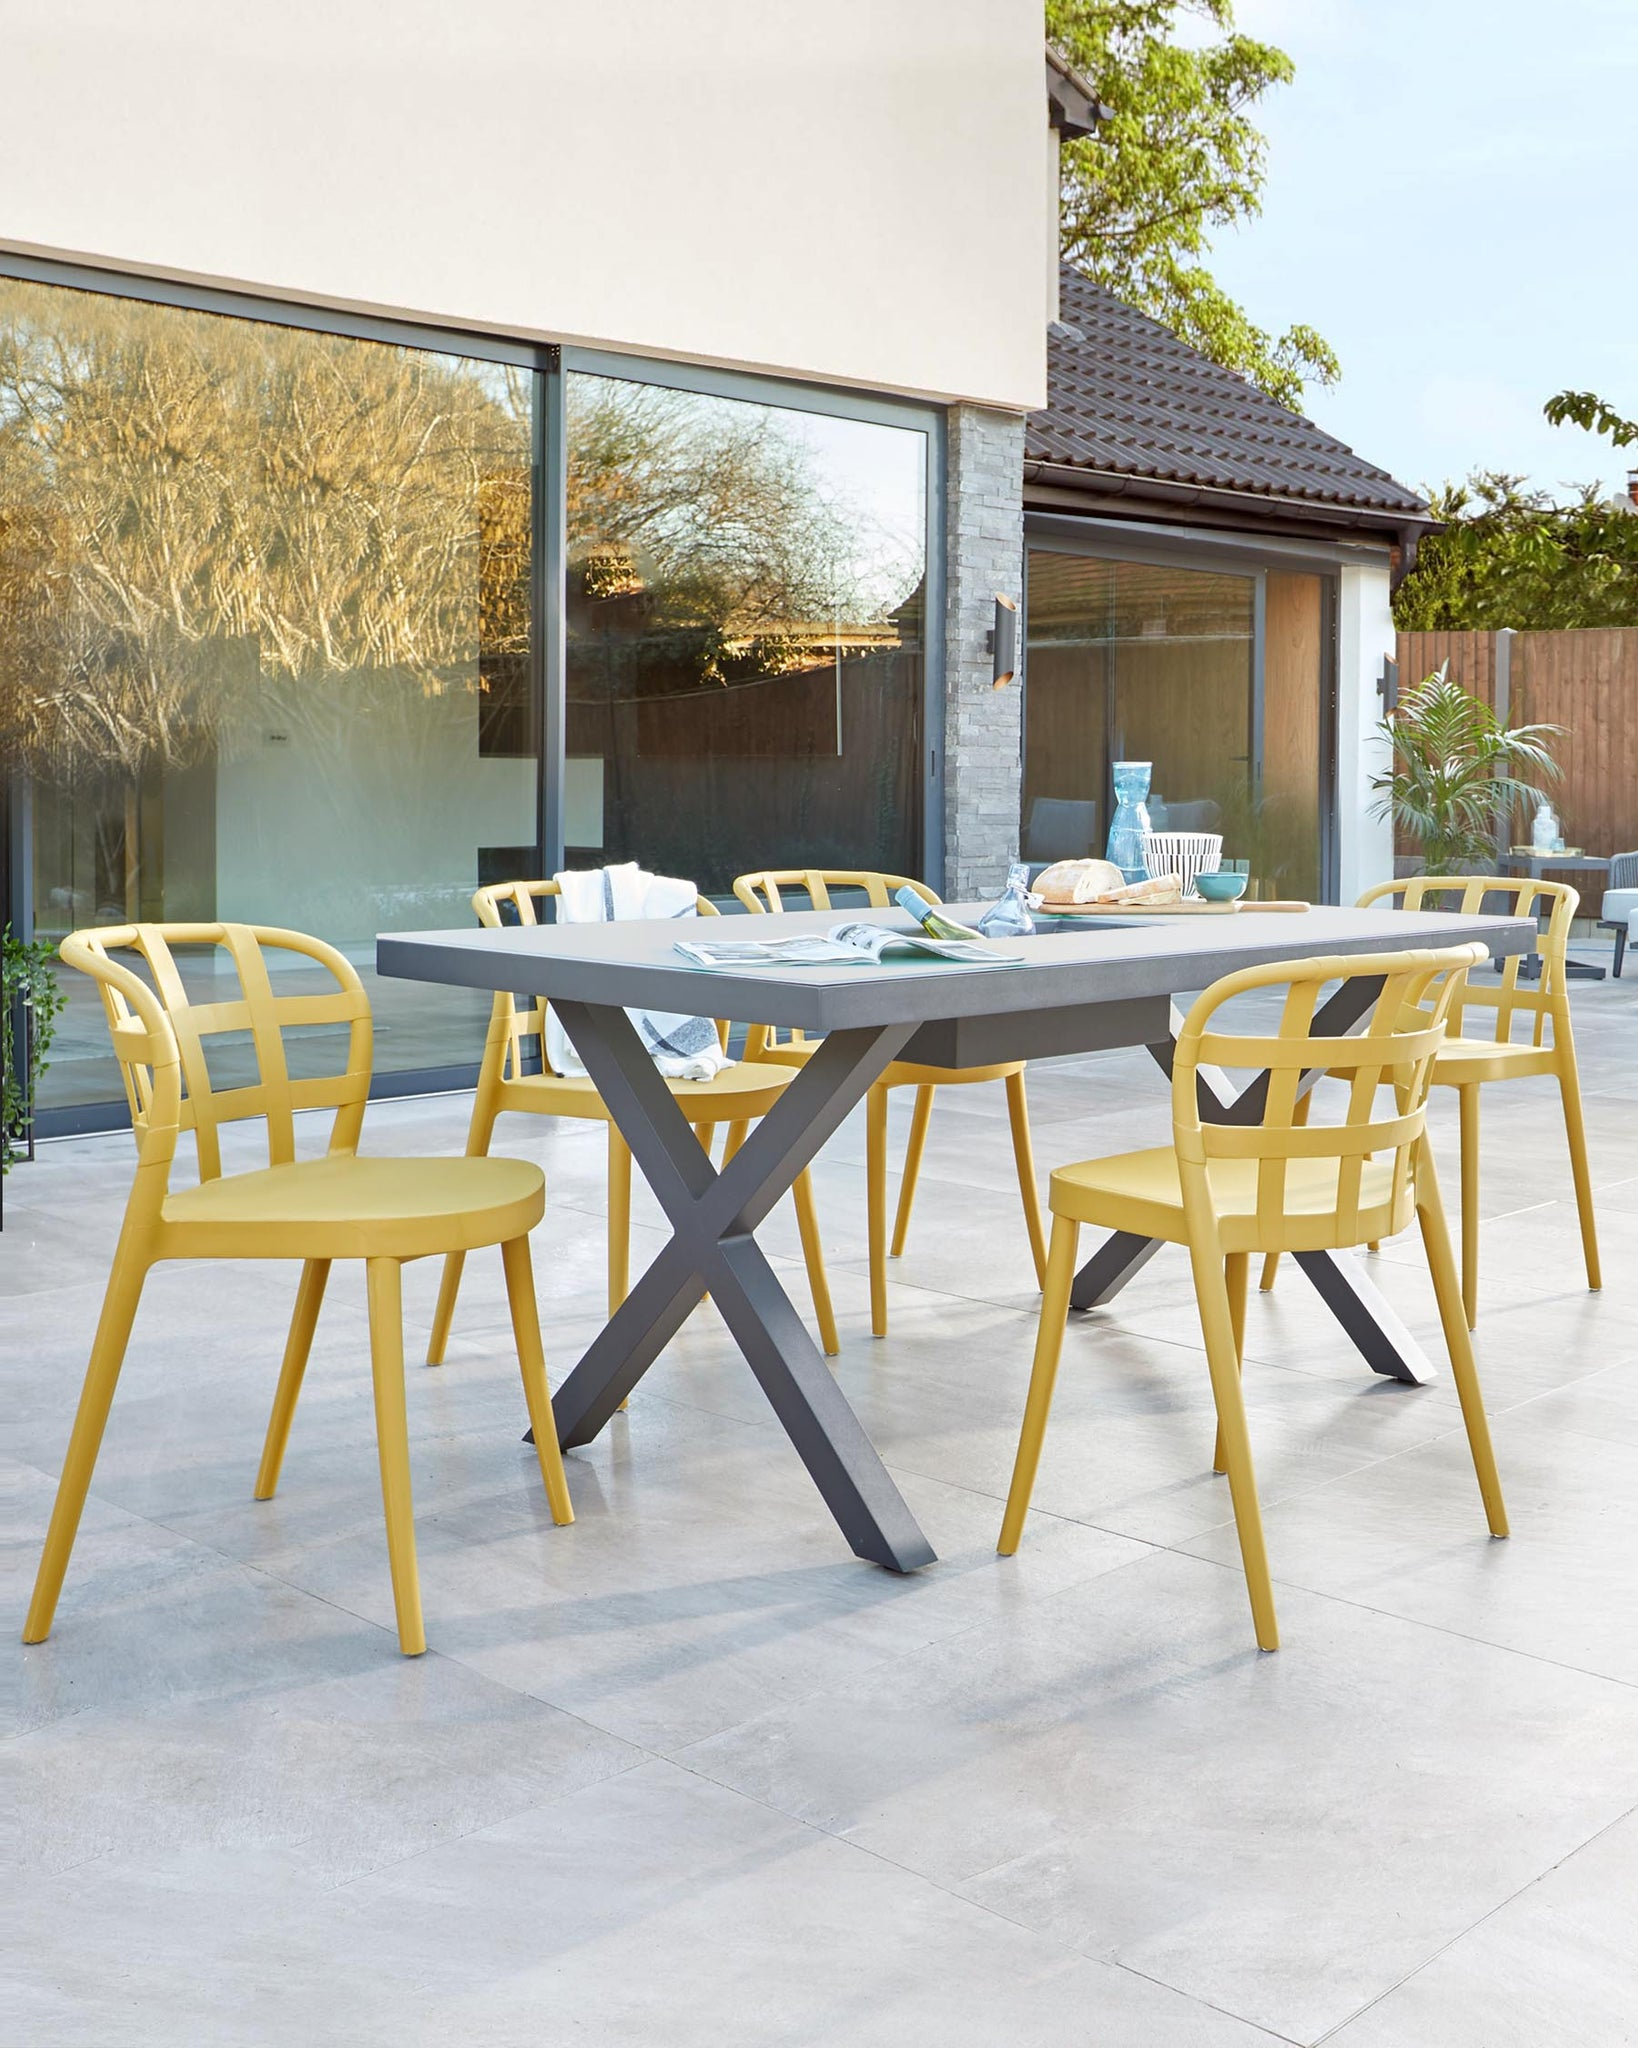 Rio Grey 4 to 6 Seater and Skye Outdoor Dining Set